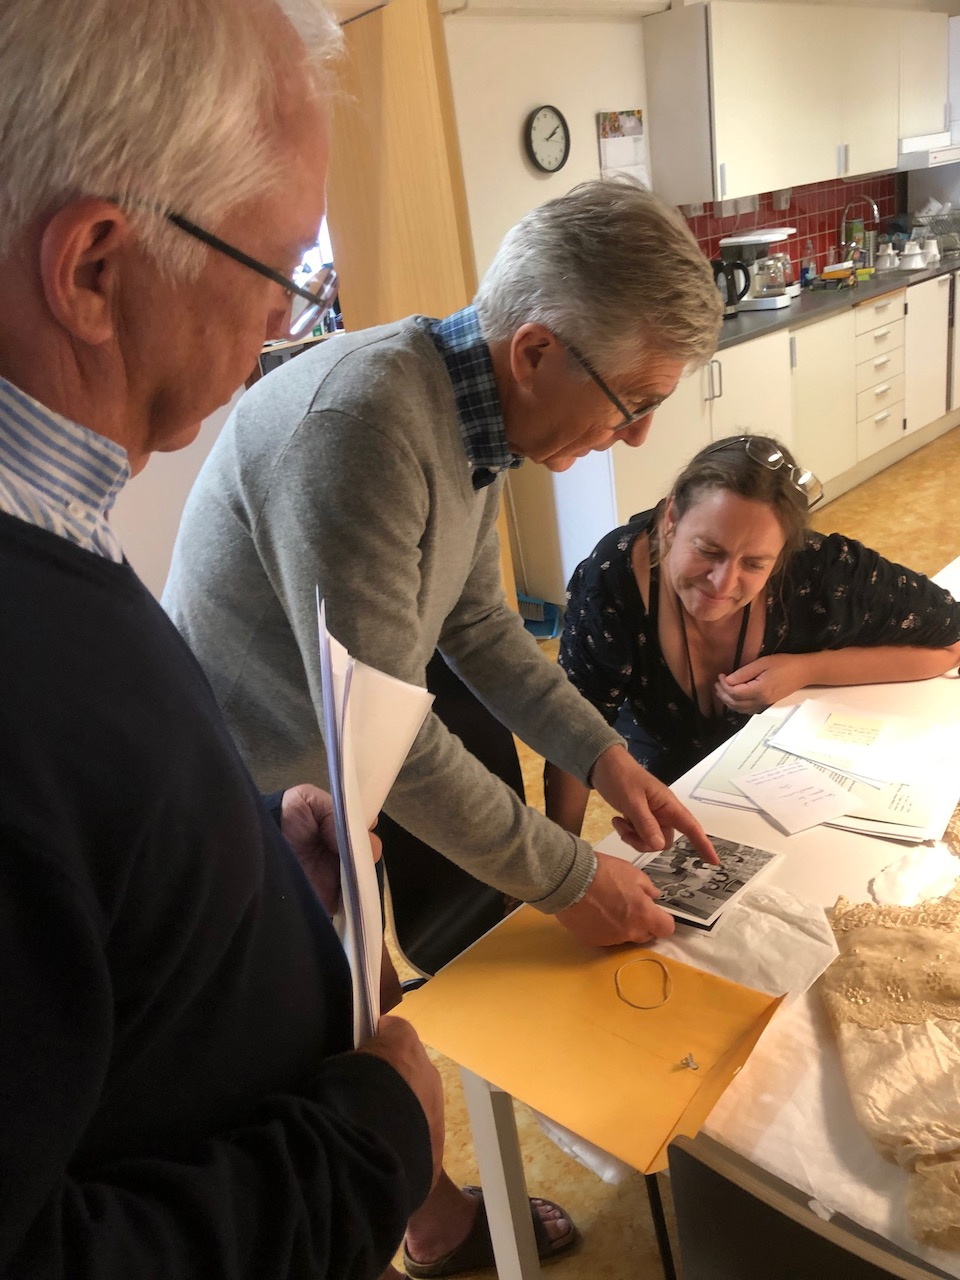 Anders and Peter deliver dress and material to Simrishamn museum